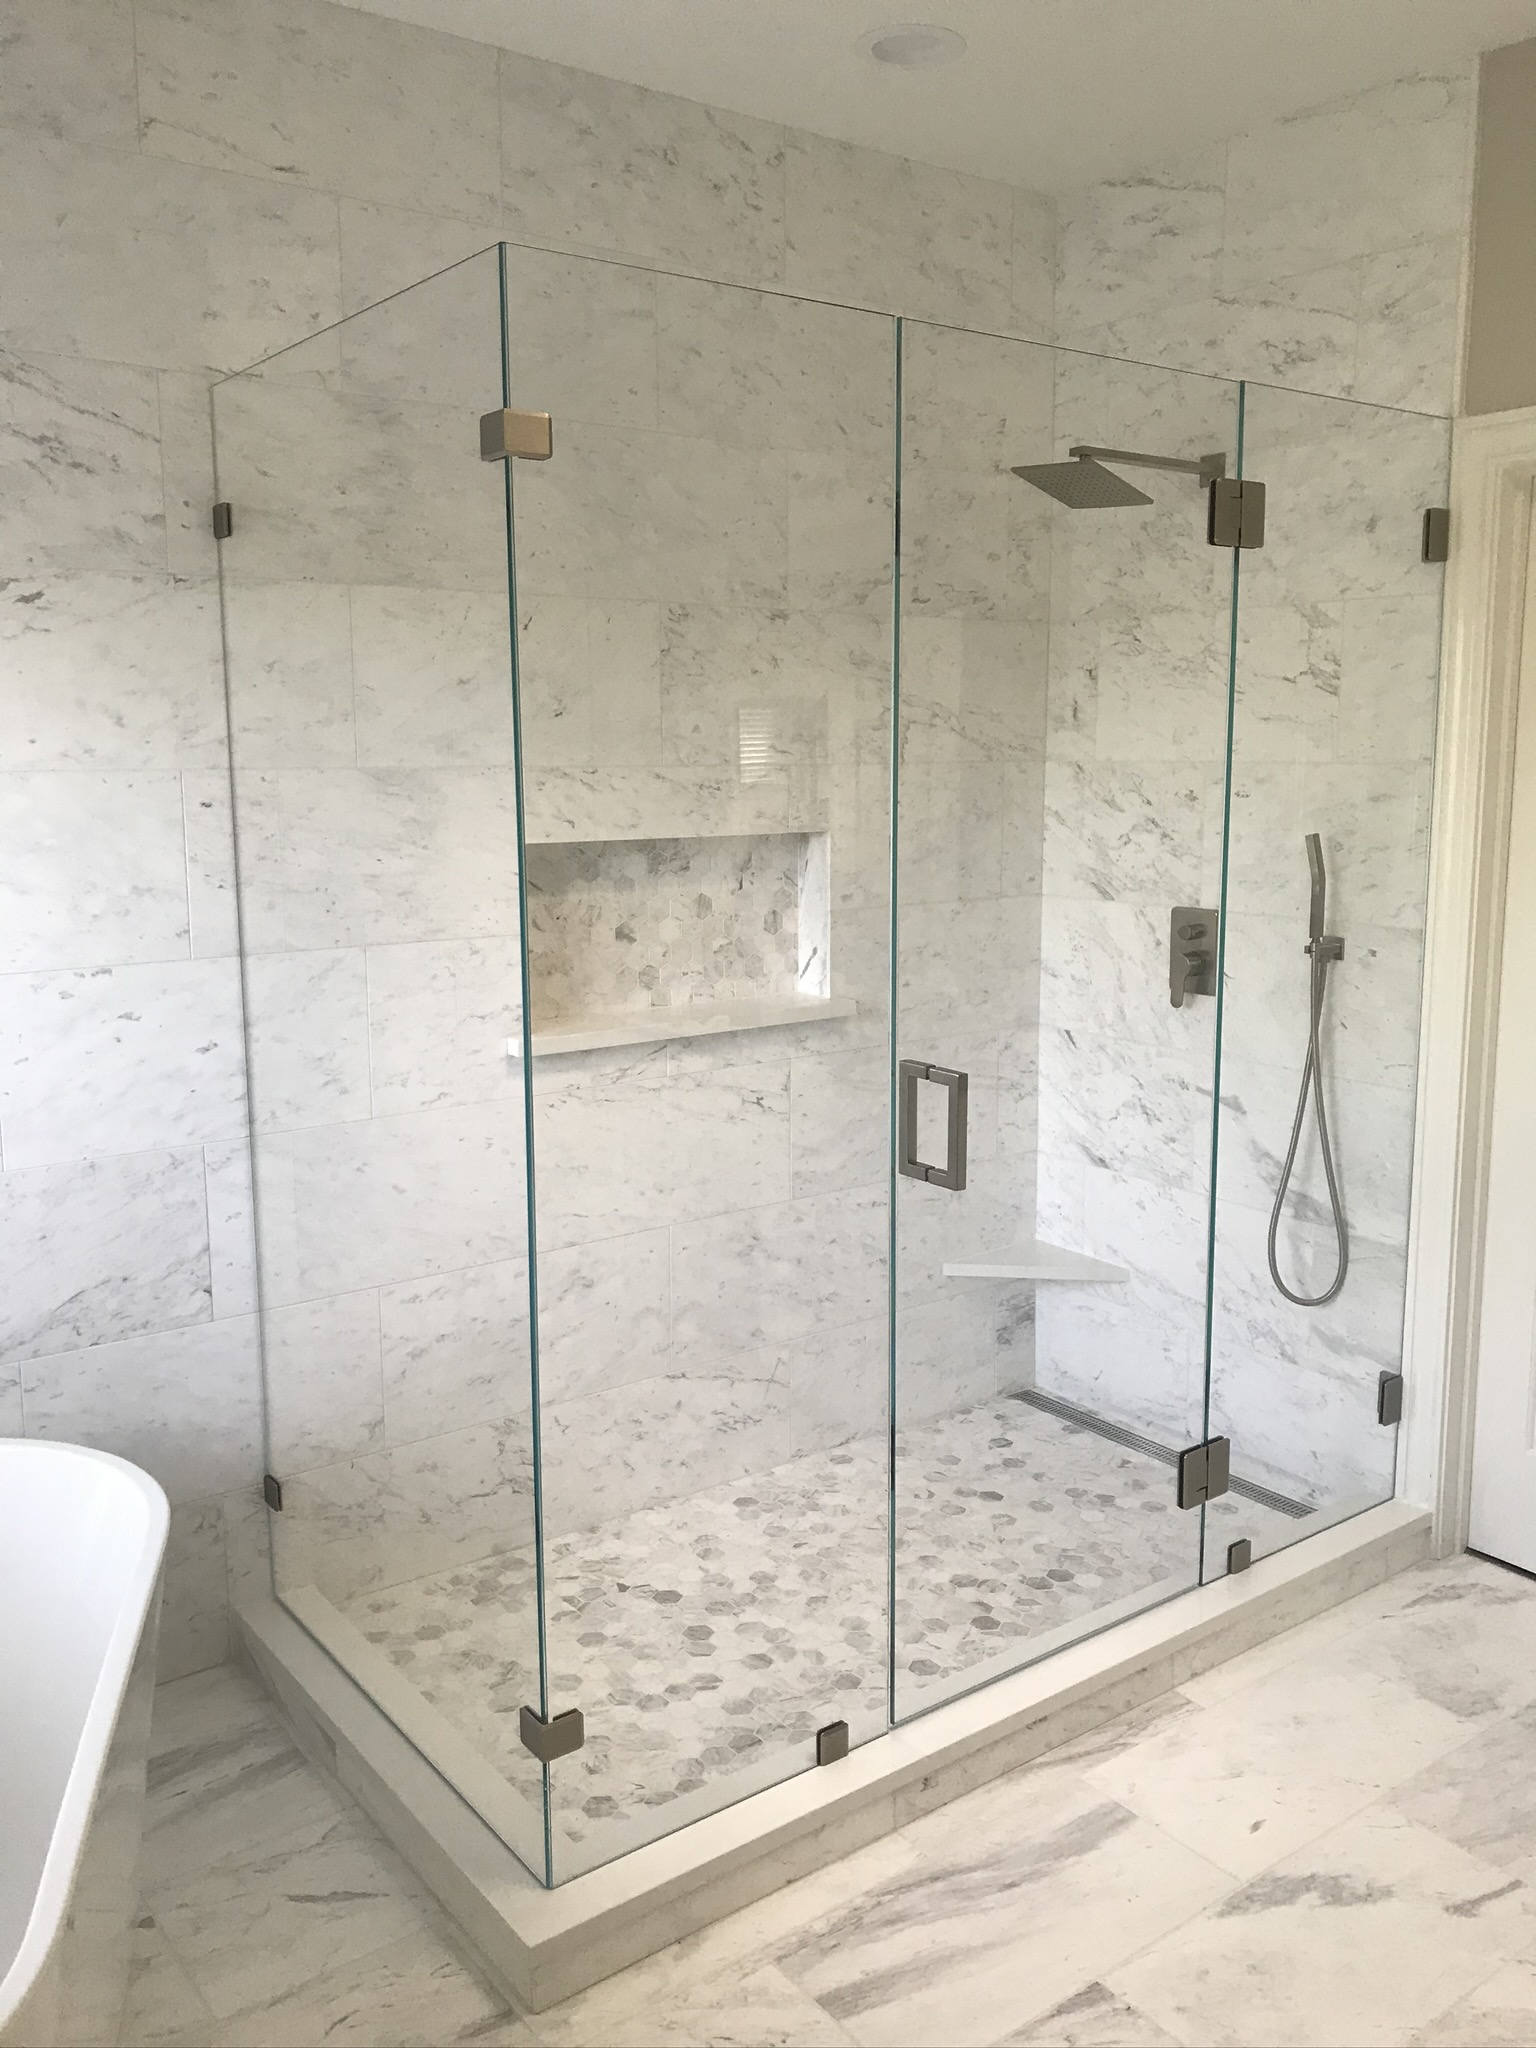 Professional Bathroom Remodel: Why You Should Contract Instead of DIY